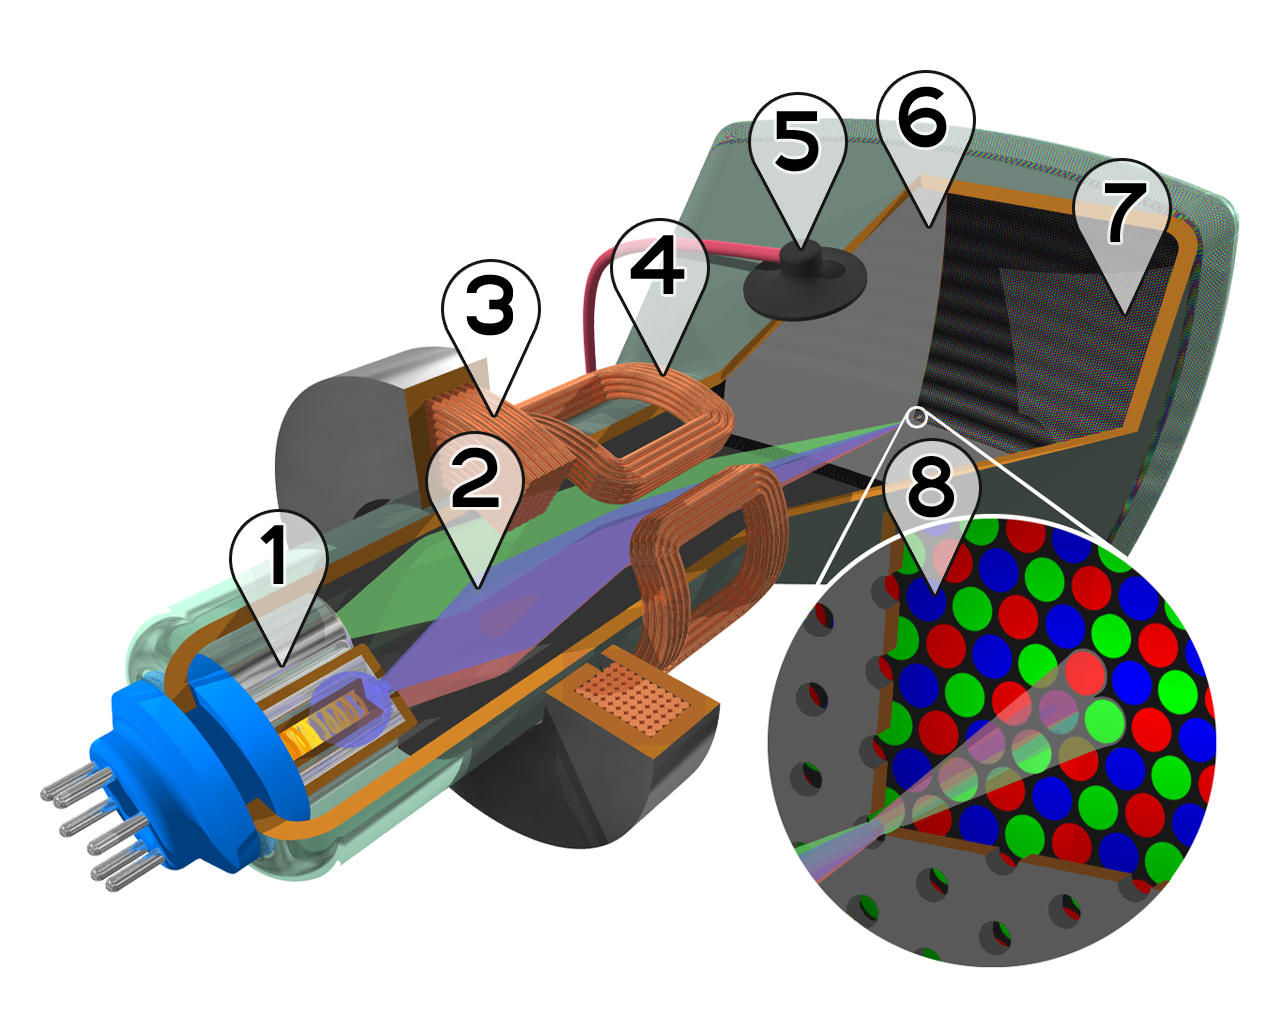 Cathode Ray Tube Wikipedia Fuse Box Video Cutaway Rendering Of A Color Crt 1 Three Electron Emitters For Red Green And Blue Phosphor Dots 2 Beams 3 Focusing Coils